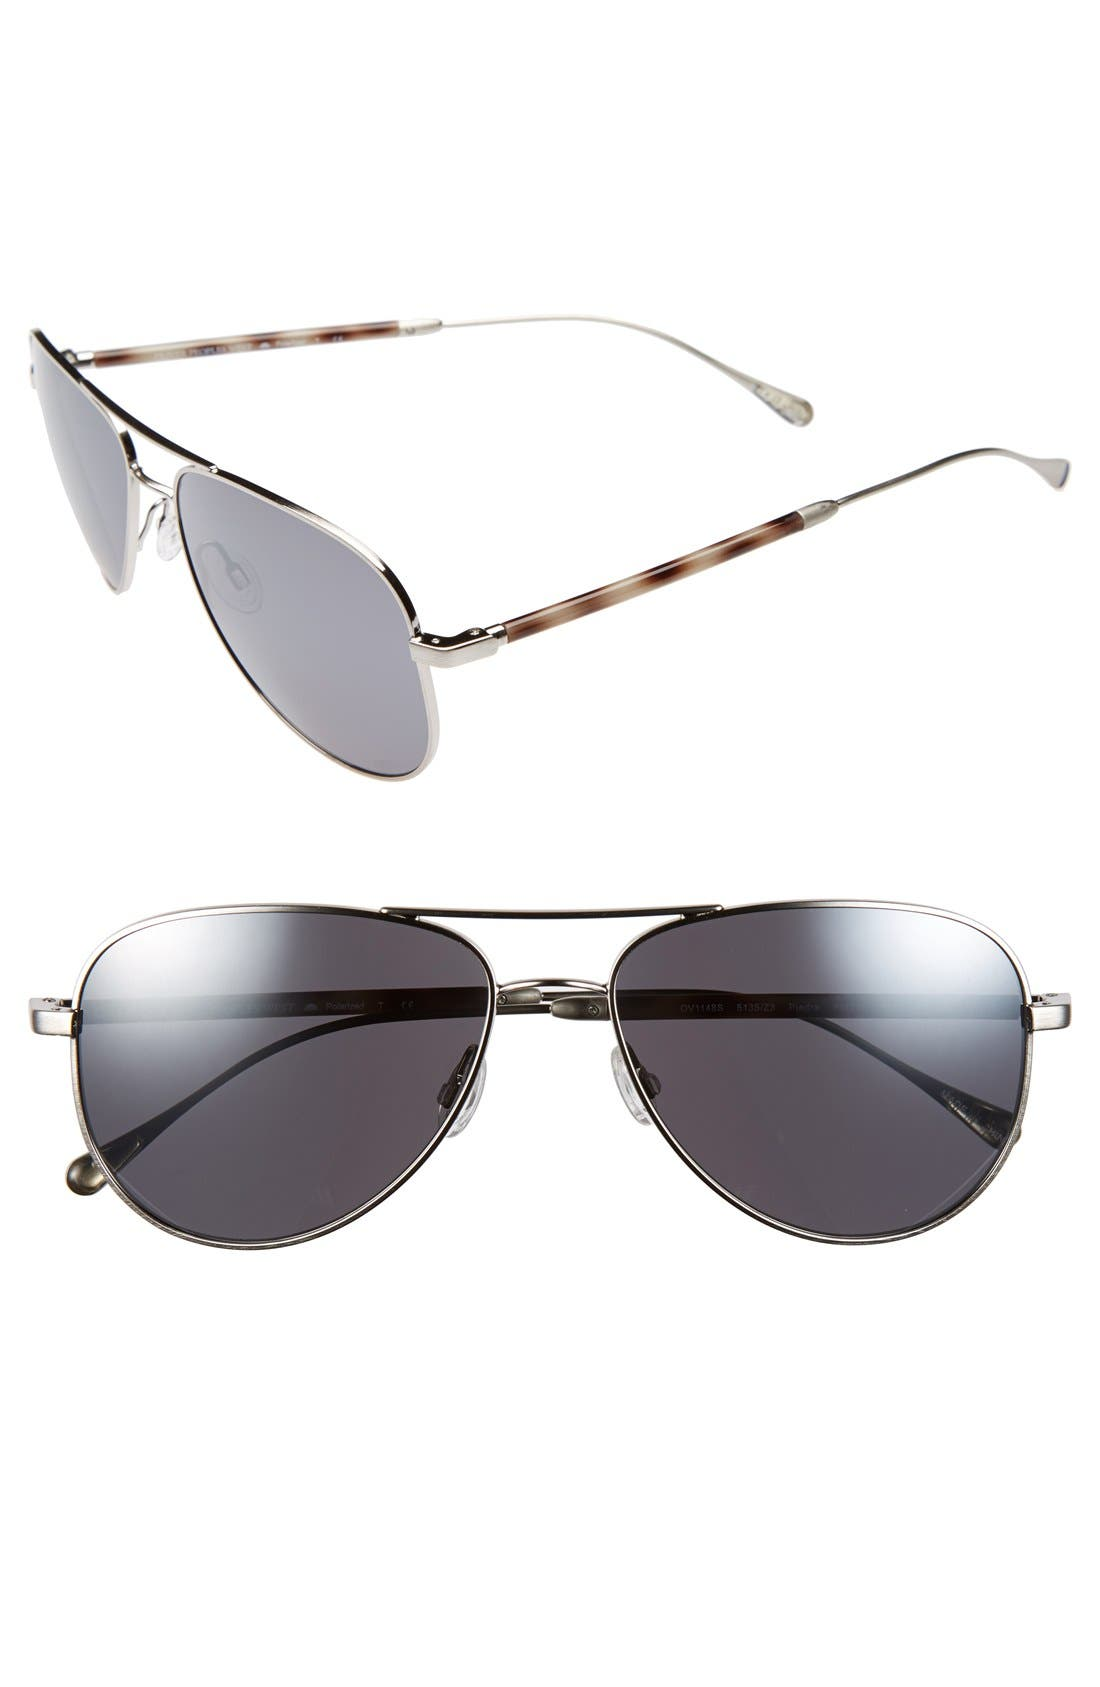 Main Image - Oliver Peoples West 'Piedra' 58mm Polarized Sunglasses